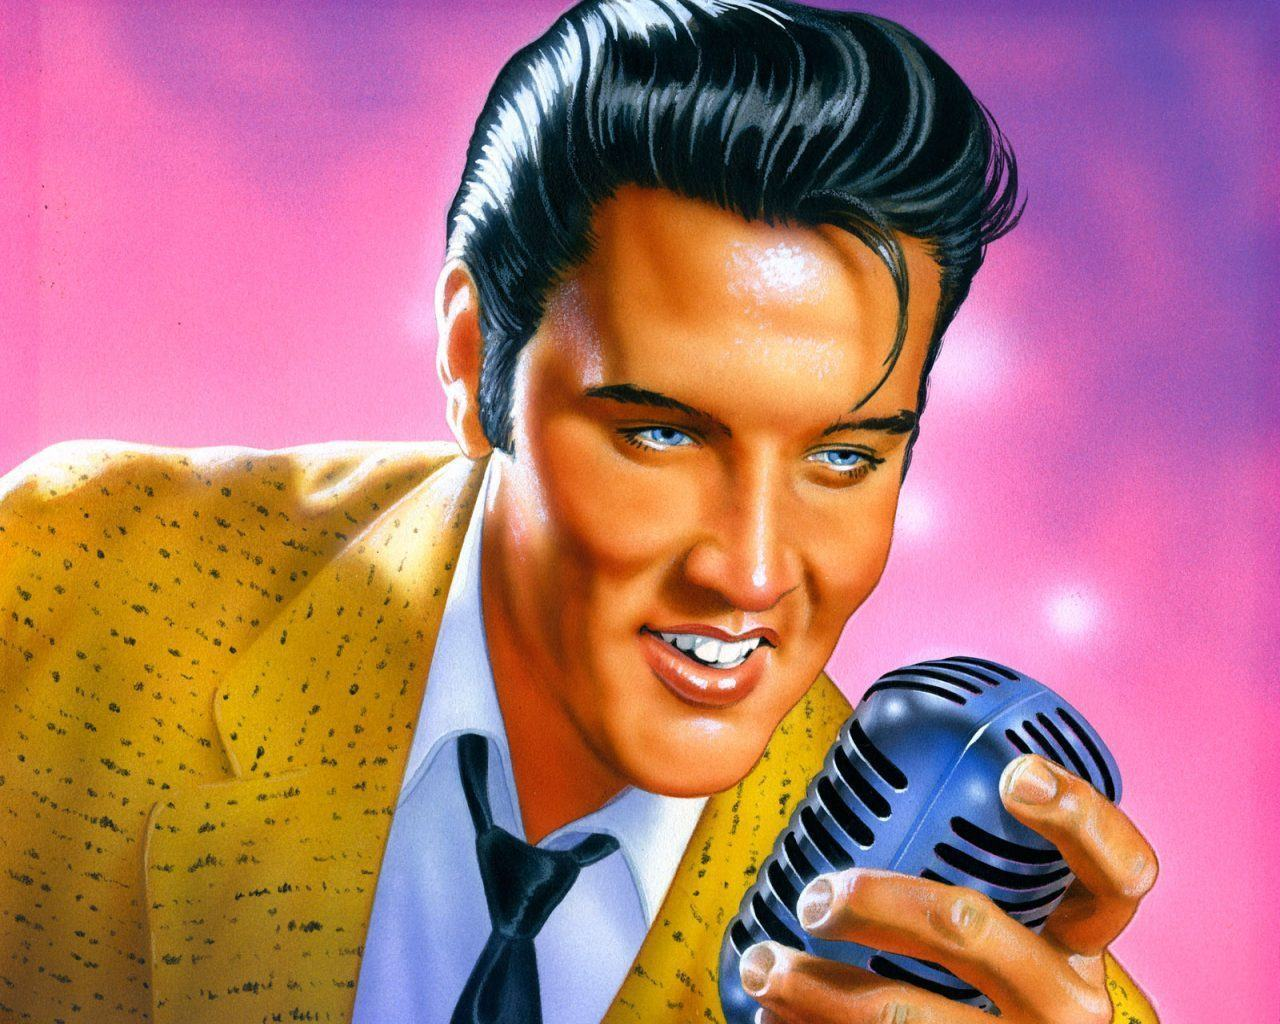 Amazing Elvis DIY Diamond Painting Kit